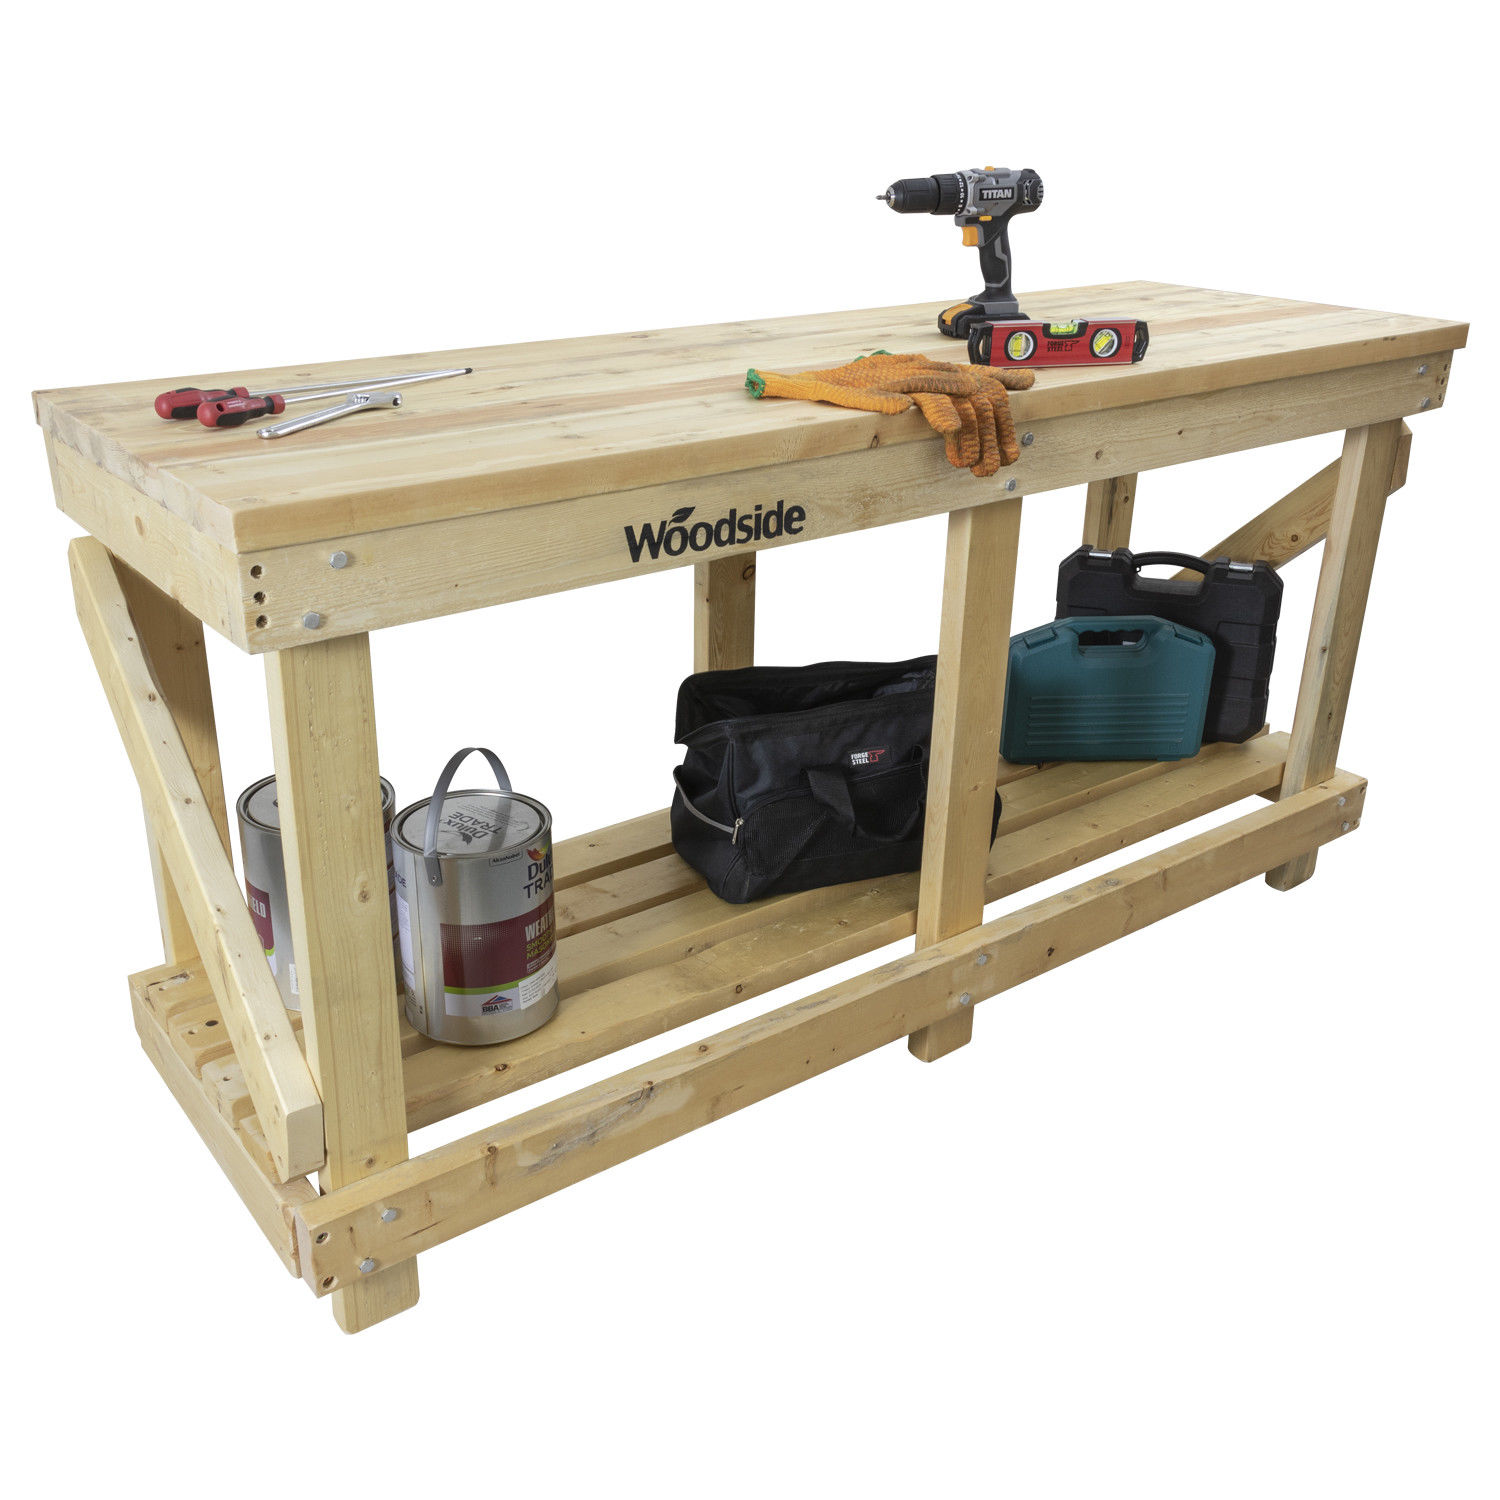 Remarkable Details About Woodside Heavy Duty 1 8M Industrial Wooden Work Bench Table Station Lamtechconsult Wood Chair Design Ideas Lamtechconsultcom